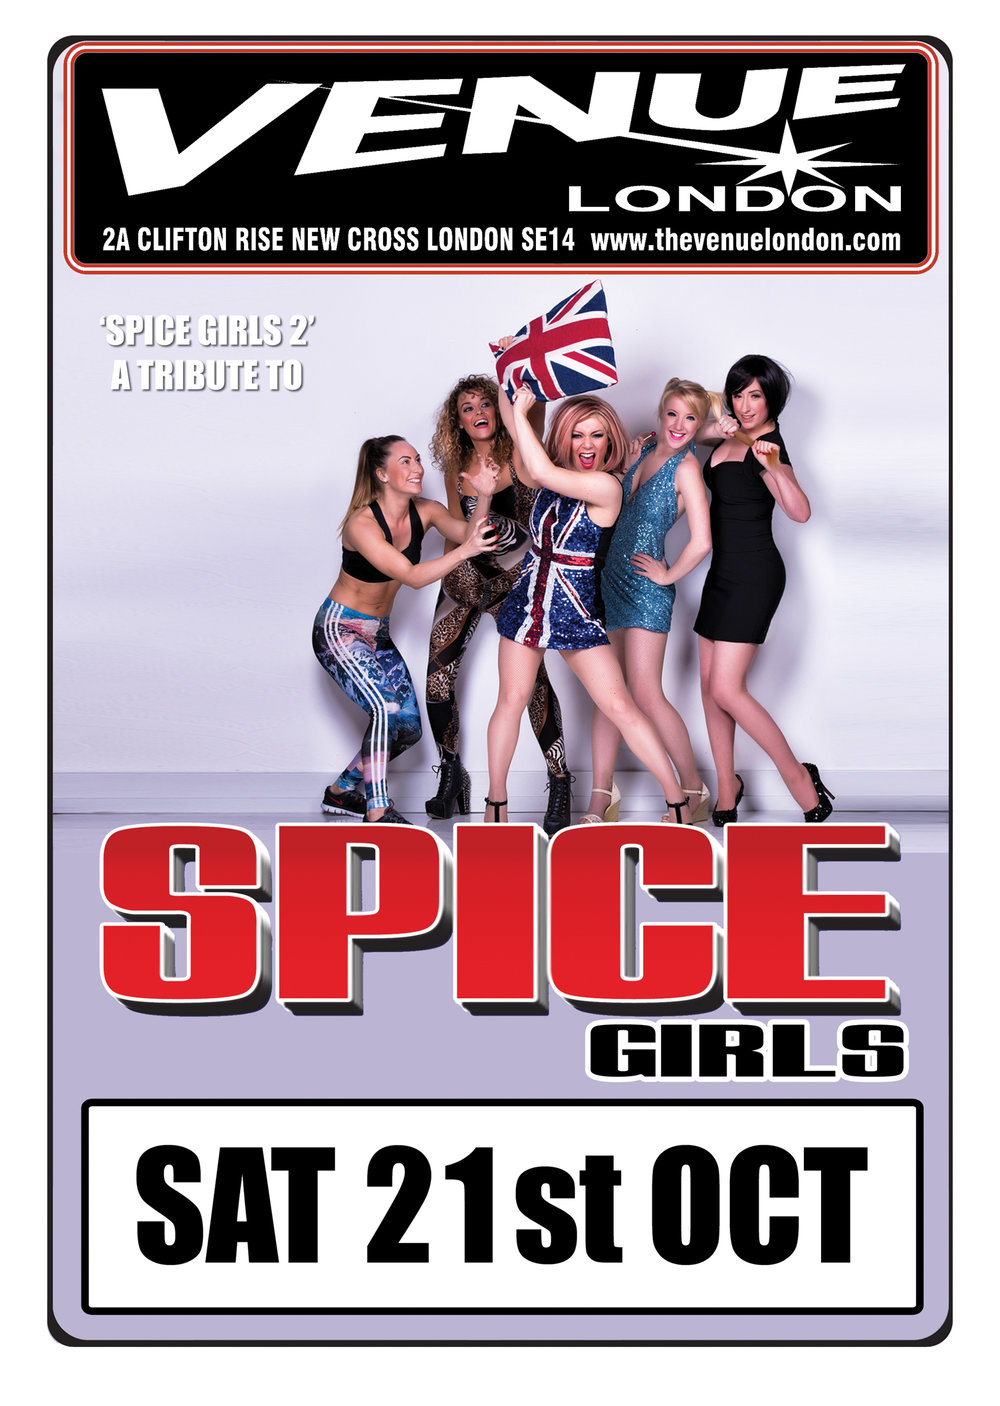 Spice Girls 2 - Possibly the most imaginative band name ever